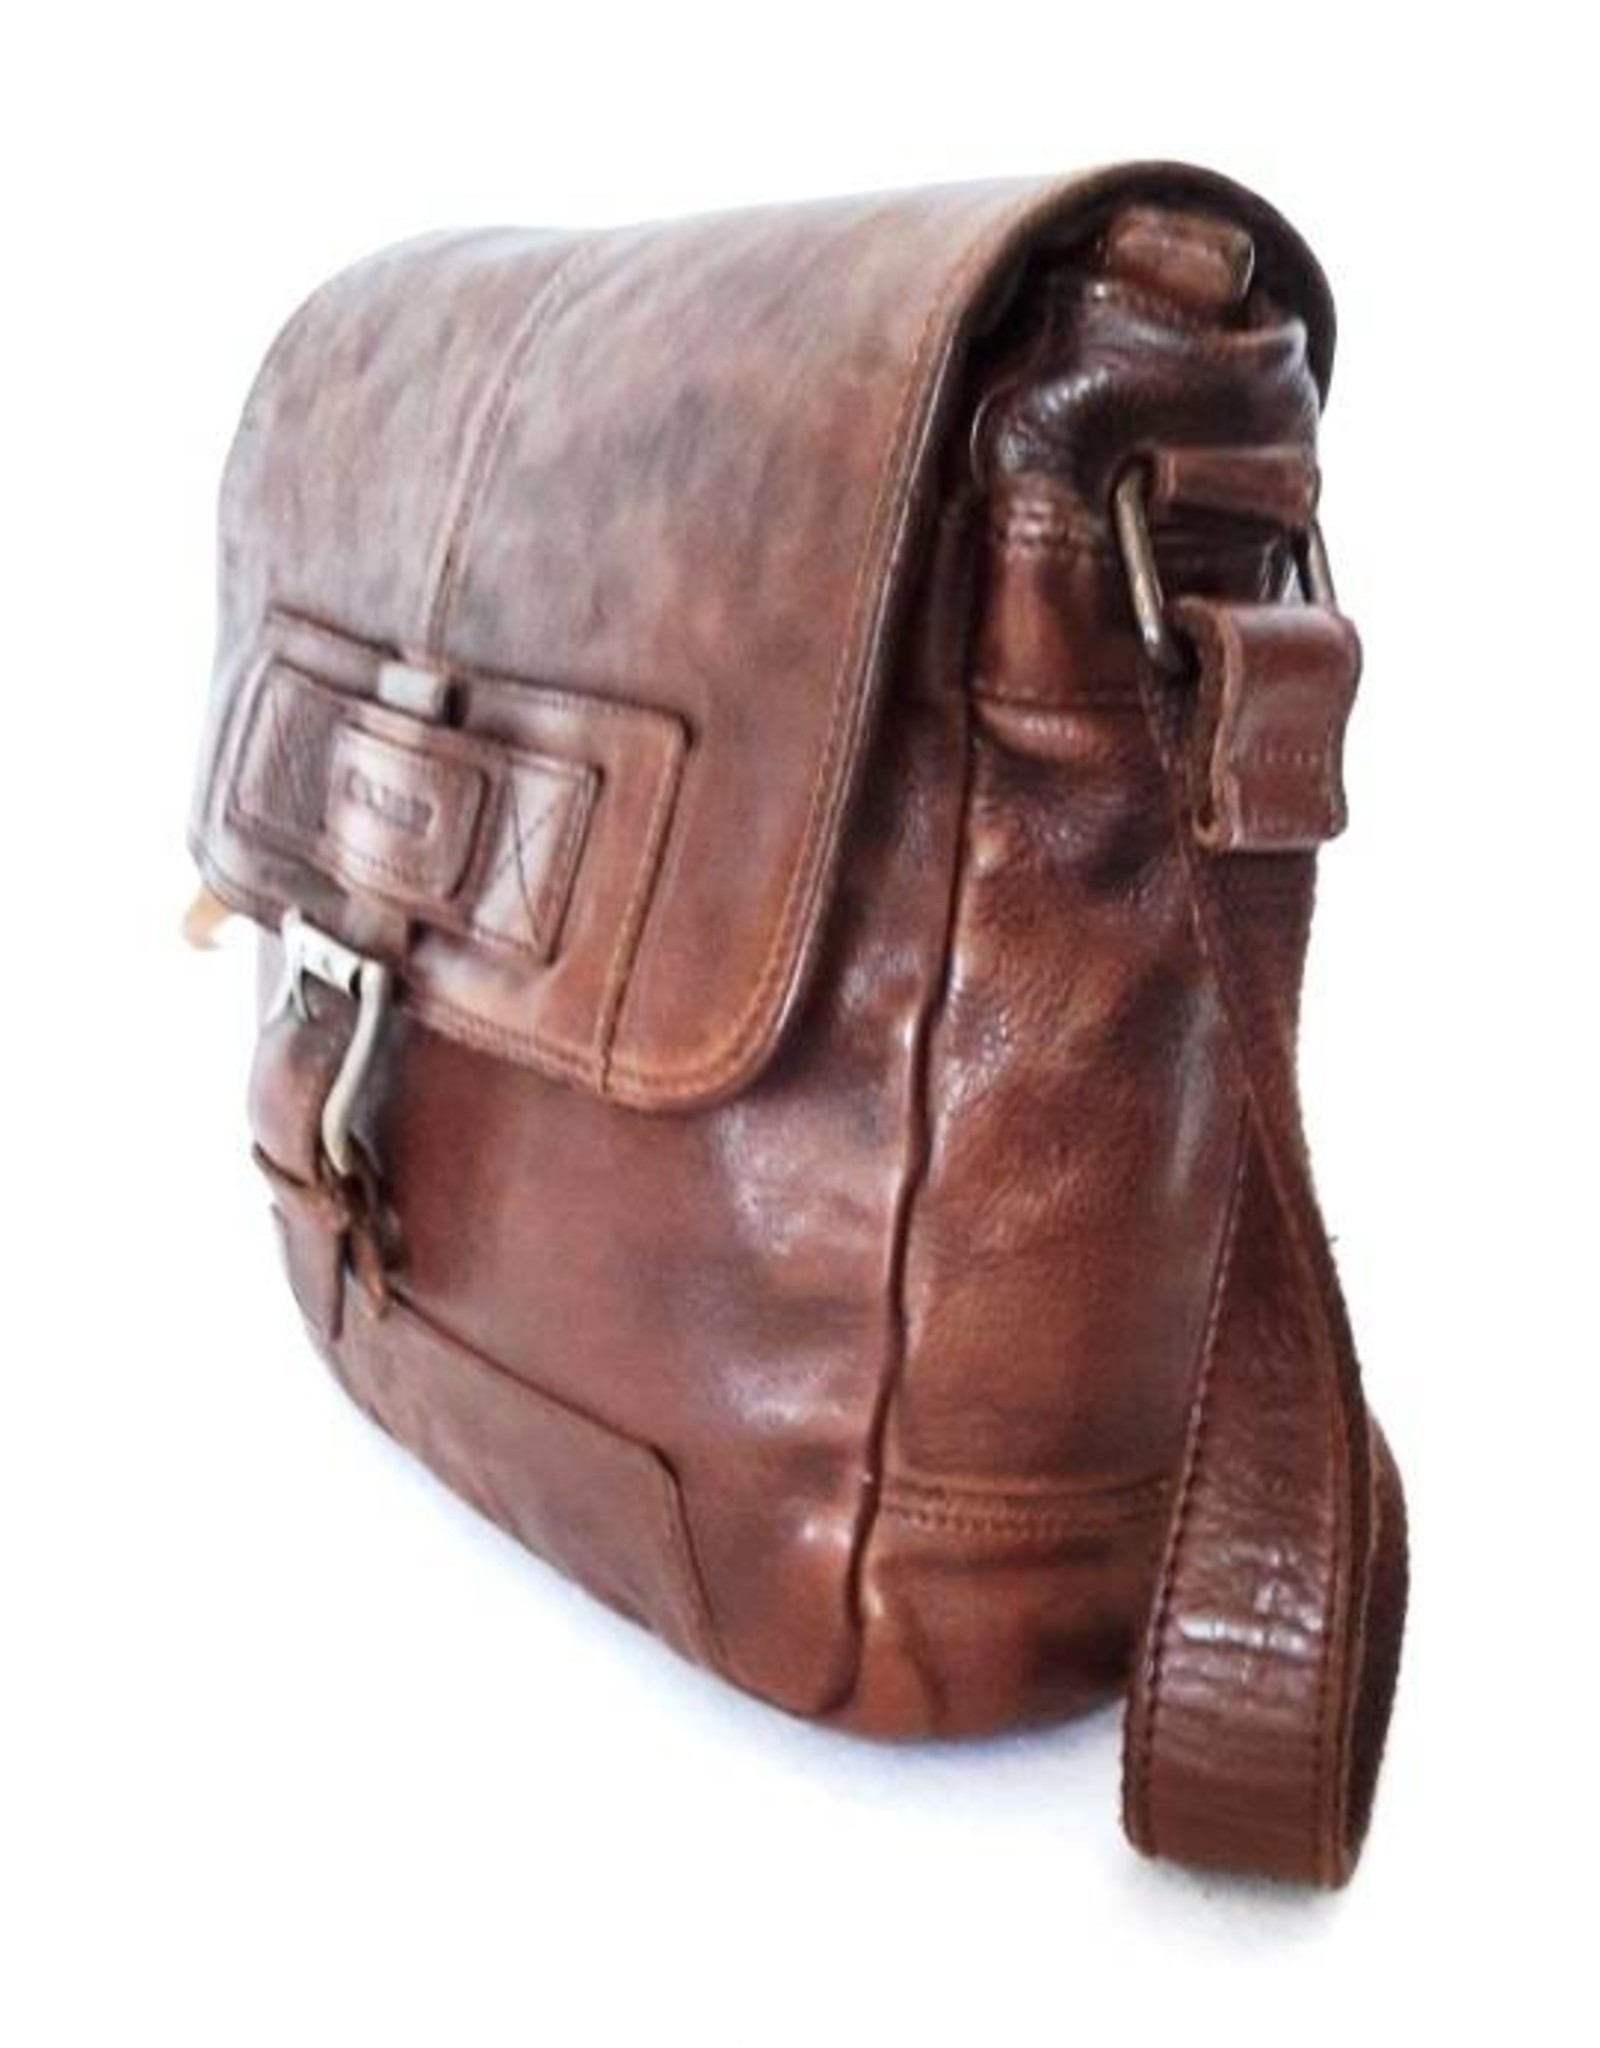 HillBurry Leather bags - Hillburry leather shoulder bag brown